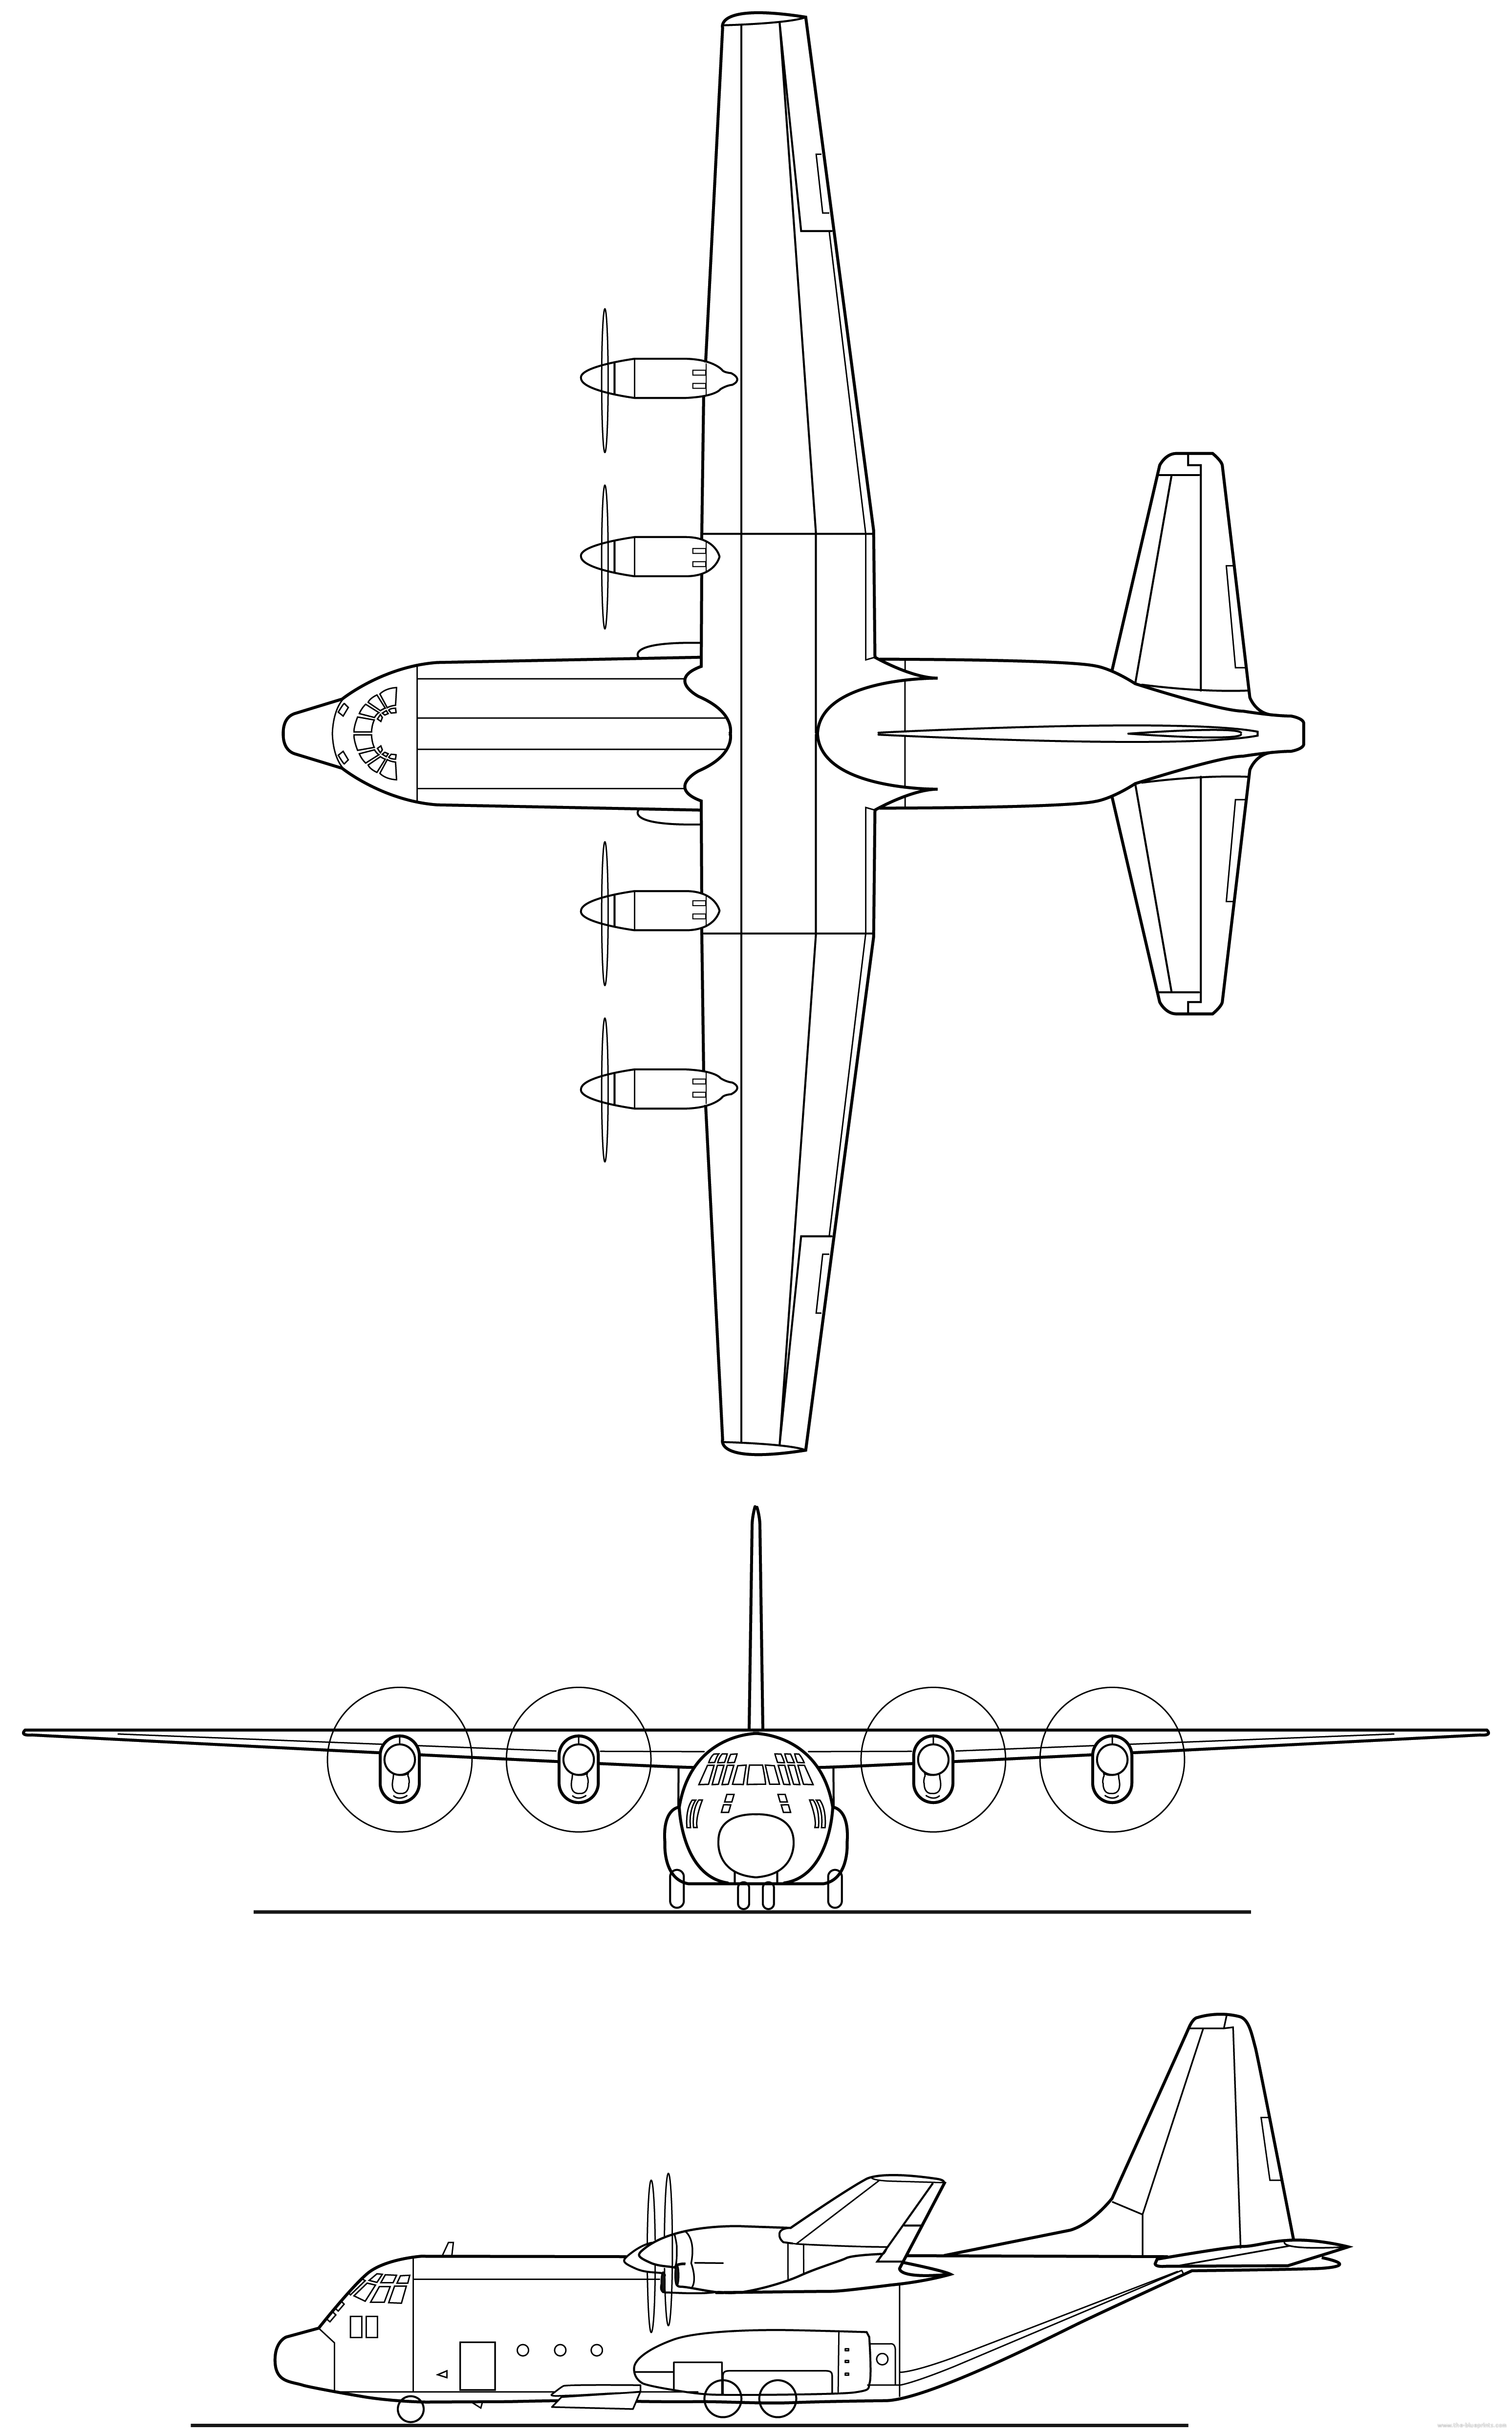 C 130 blueprints pictures to pin on pinterest pinsdaddy for Find blueprints